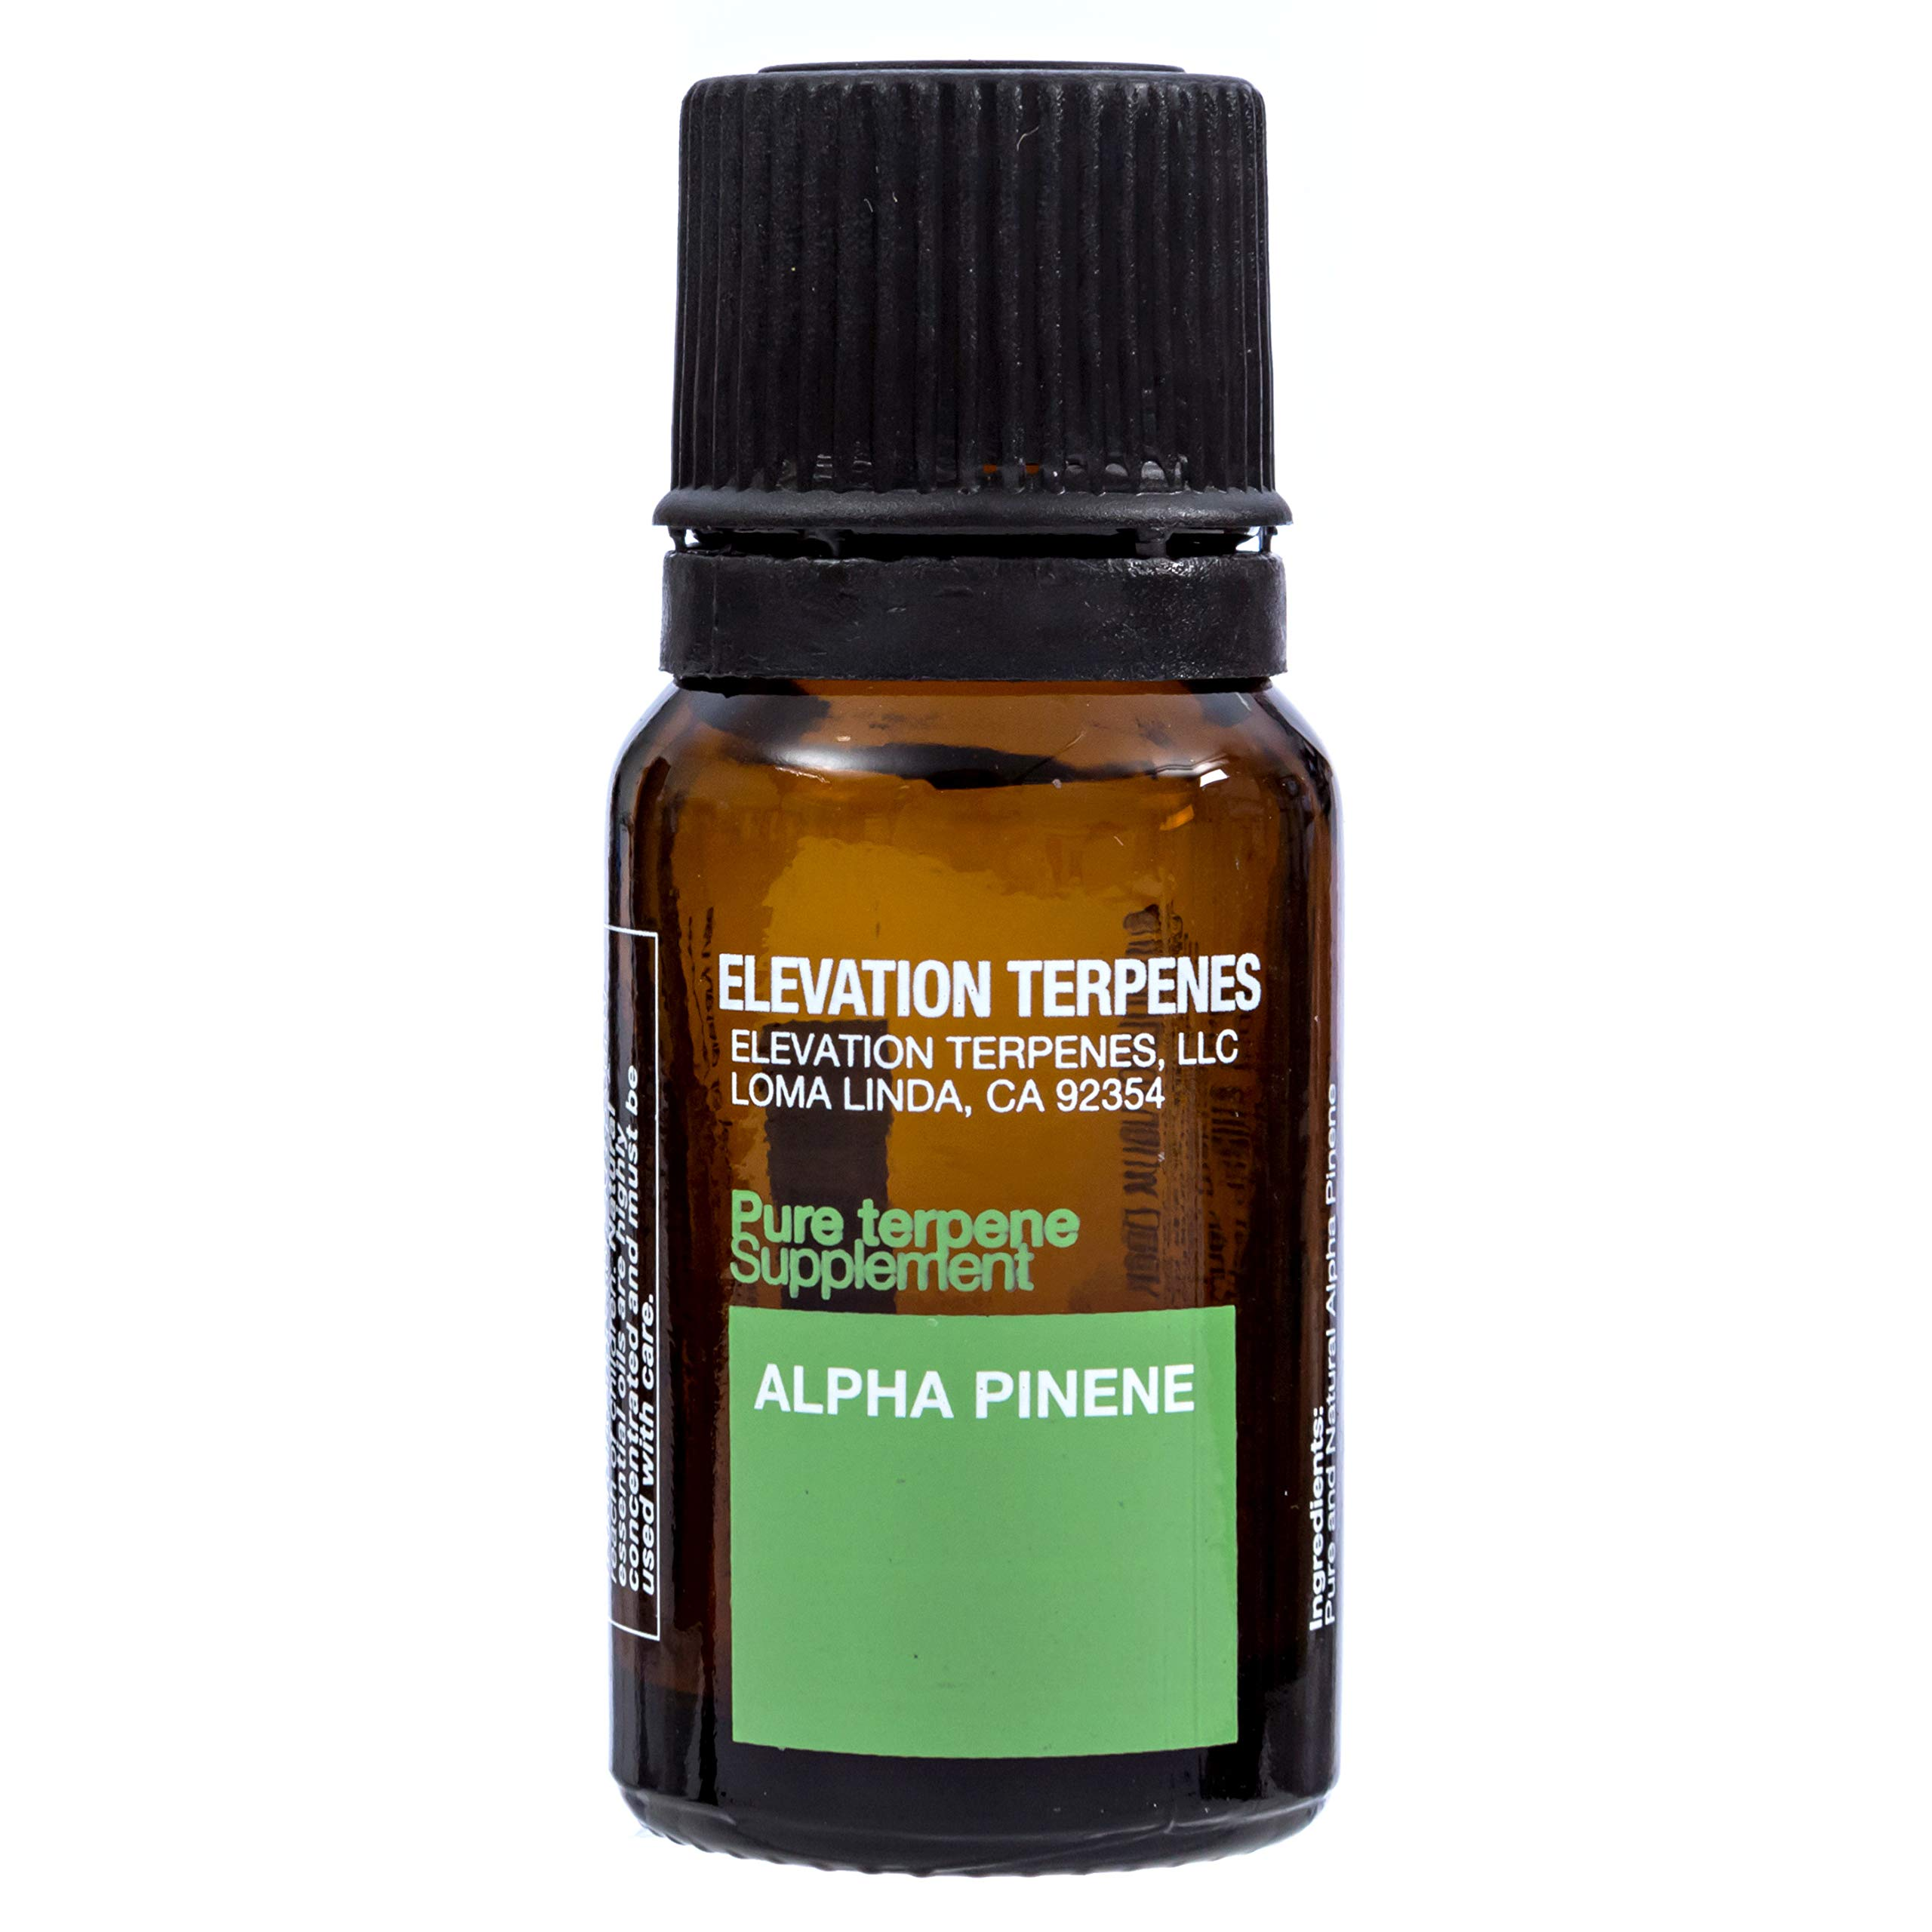 Elevation Terpenes 100% Alpha-Pinene Food Grade Terpene 10ML Produced in the USA